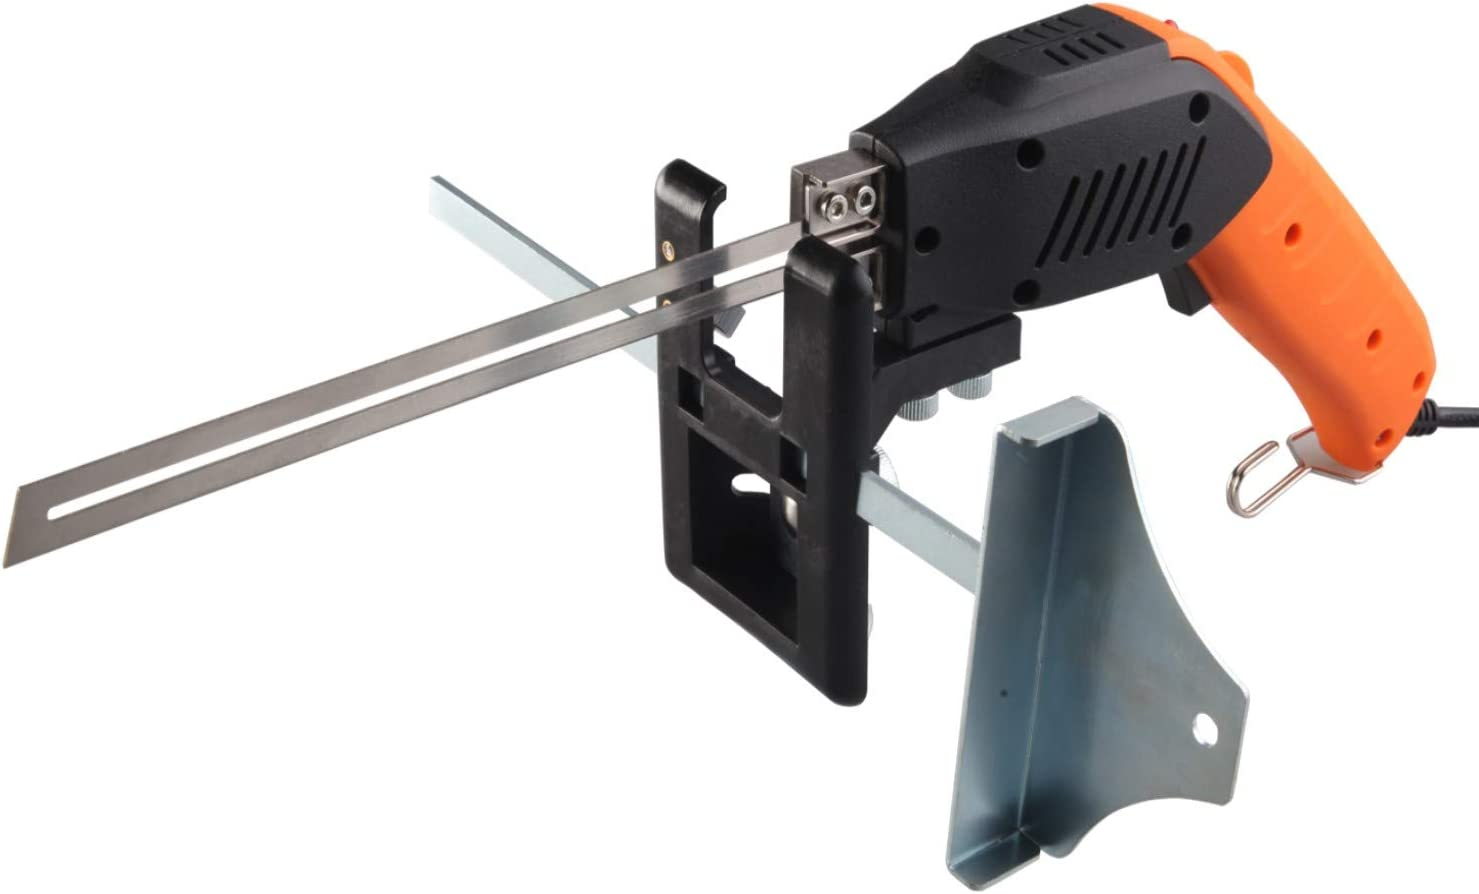 Air-Cooling Electric Foam Cutter Very popular 110V Cutting Ranking TOP8 Knife Sty Hot 200W